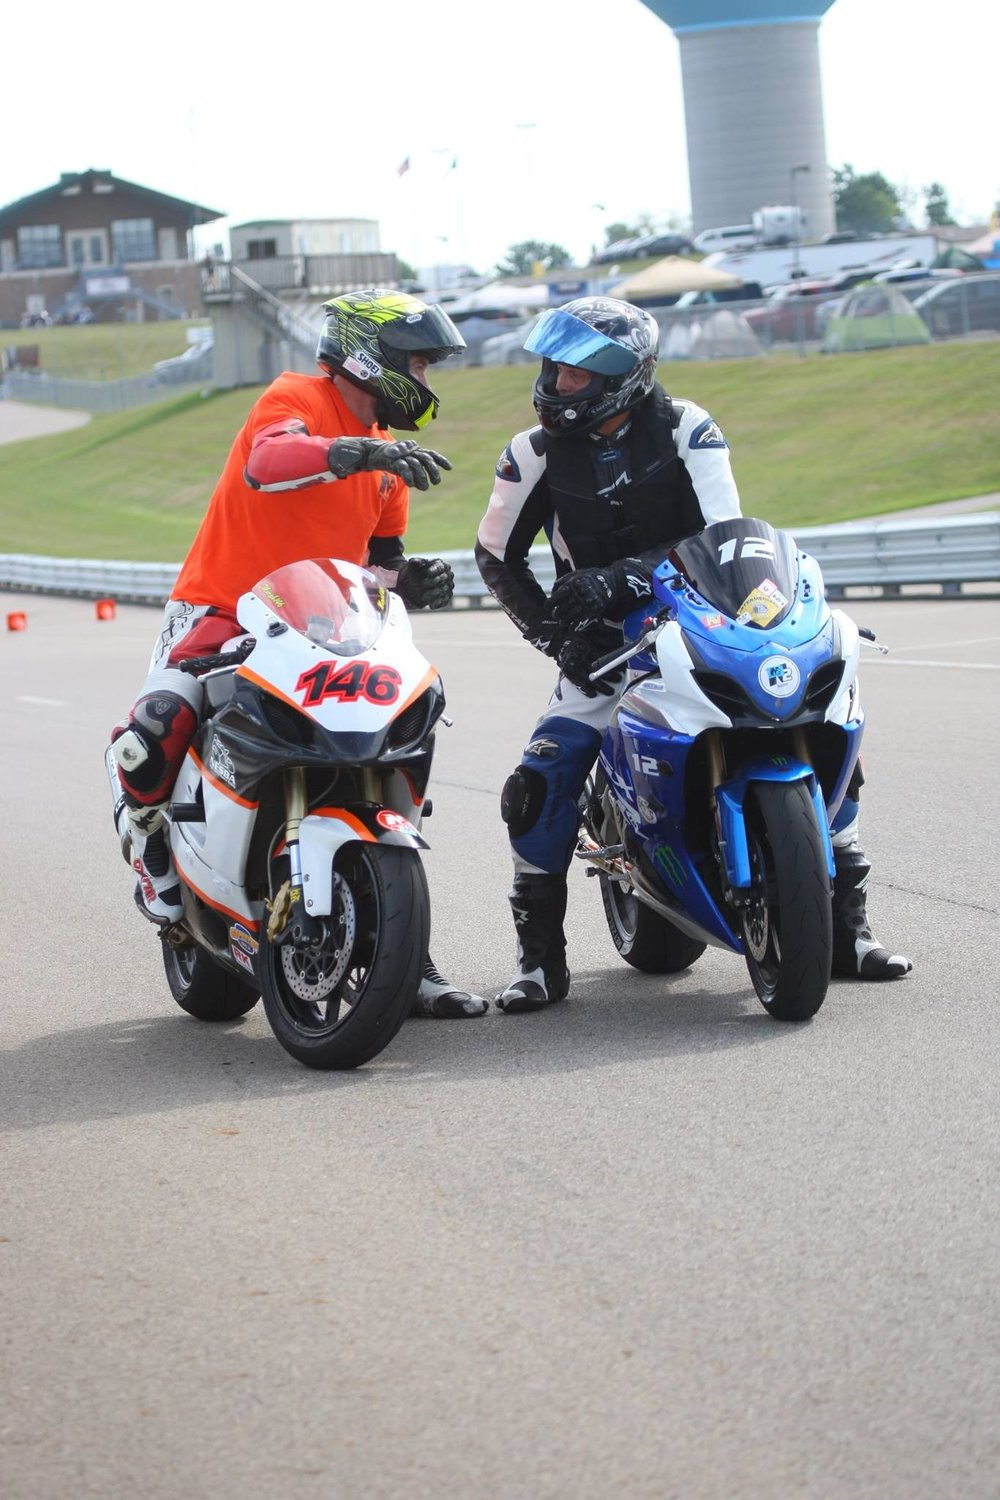 After each session a control rider will find you if they got to observe you riding